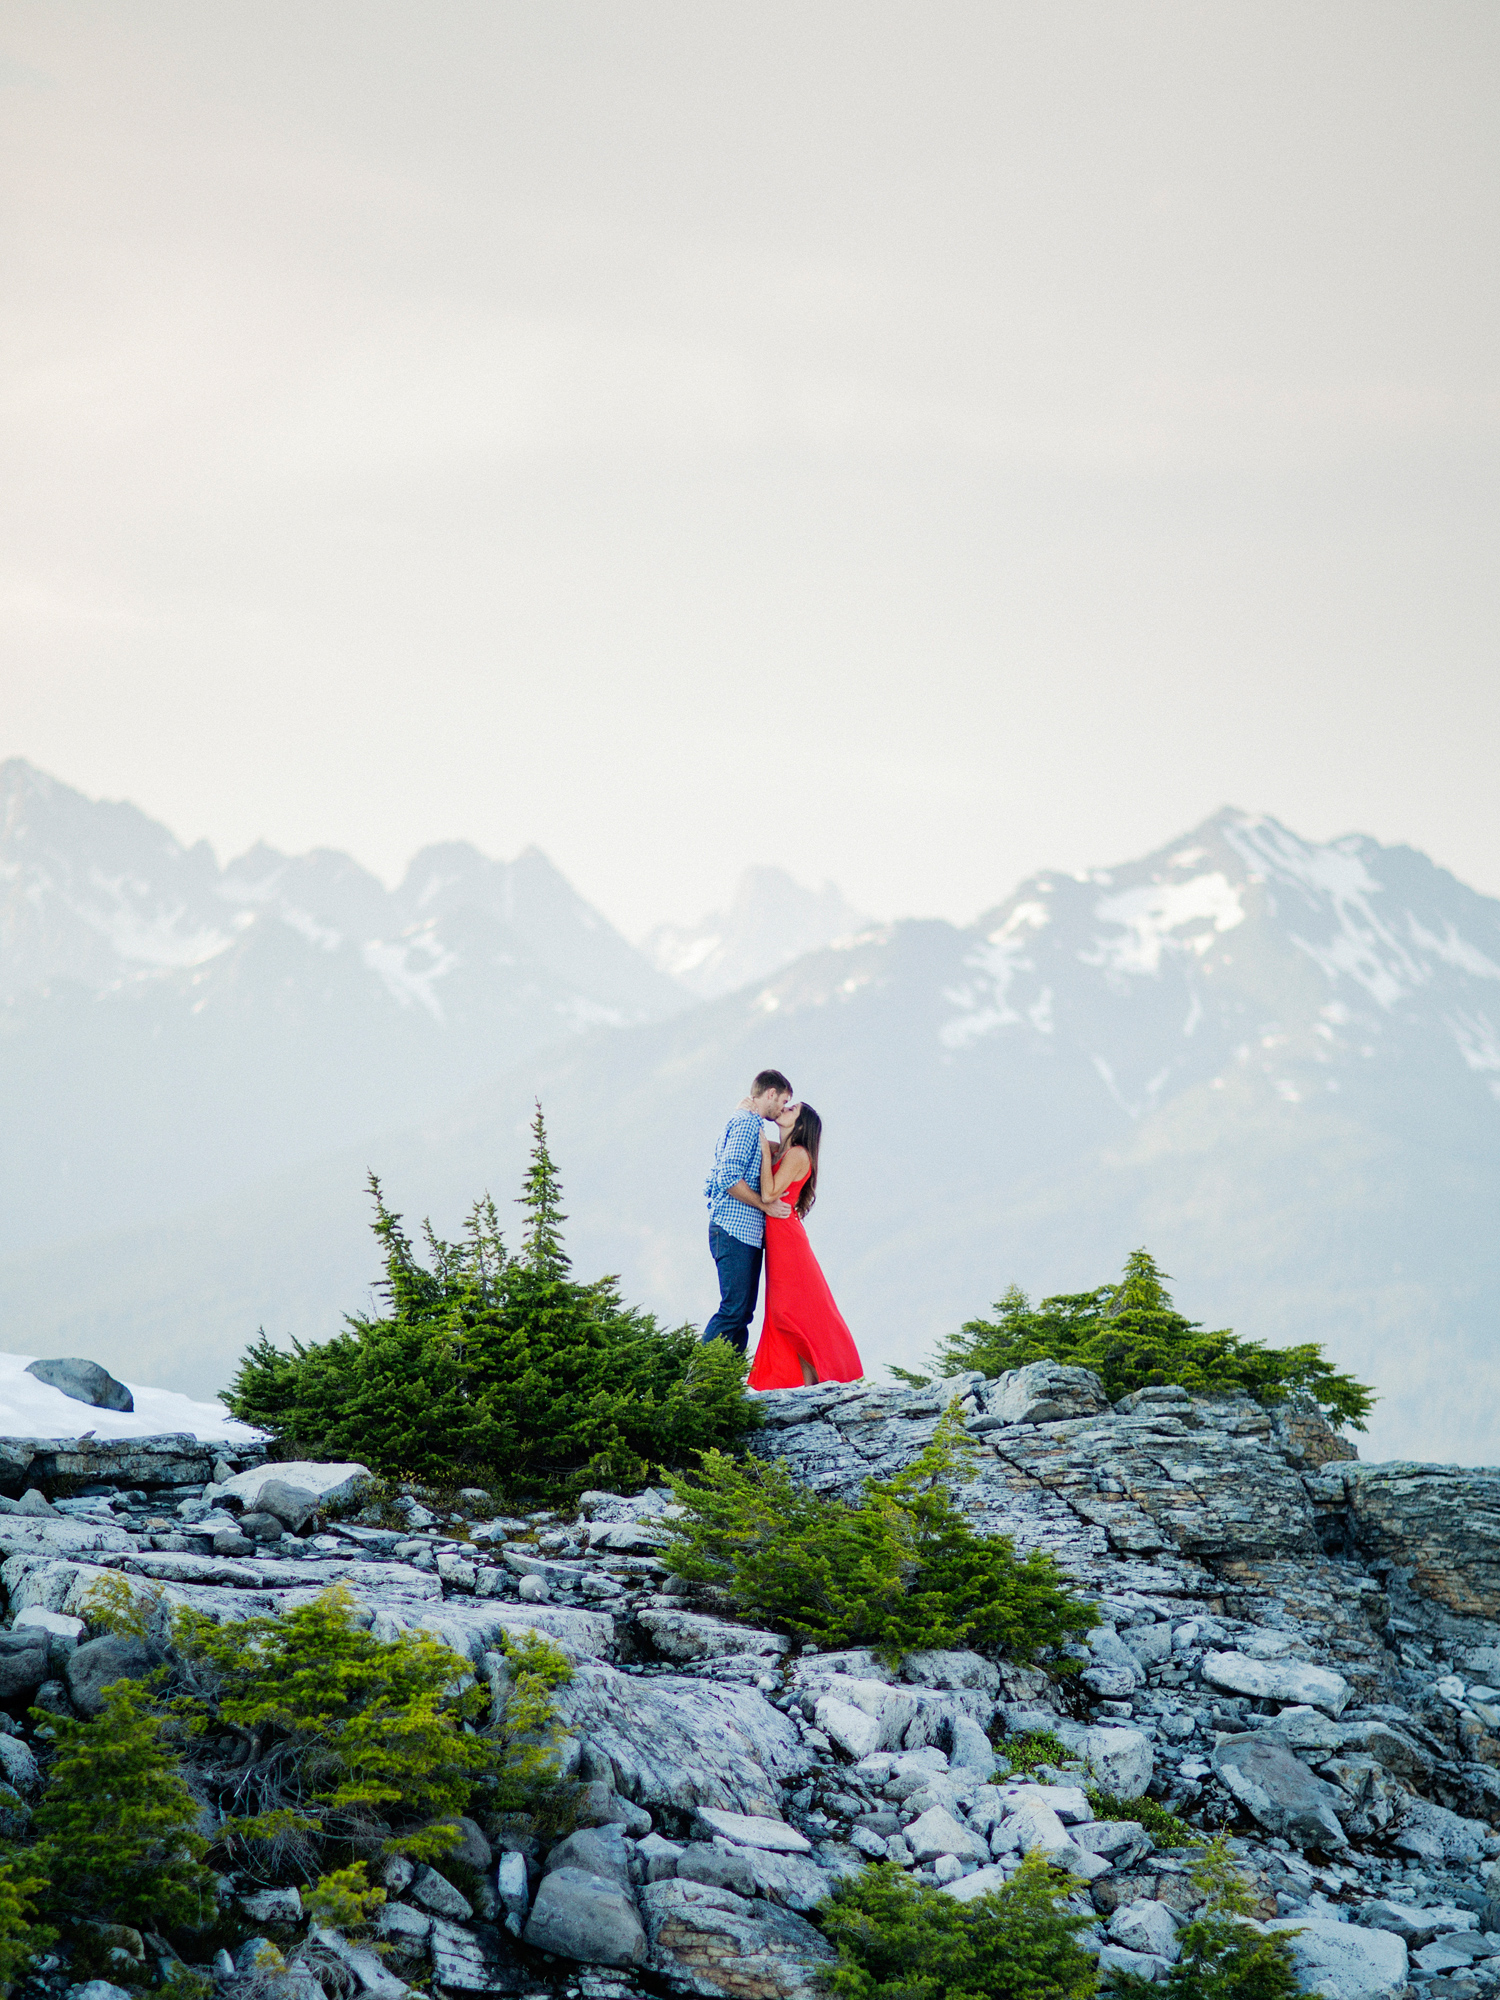 ryan-flynn-seattle-pnw-mountain-engagement-film-0029.JPG